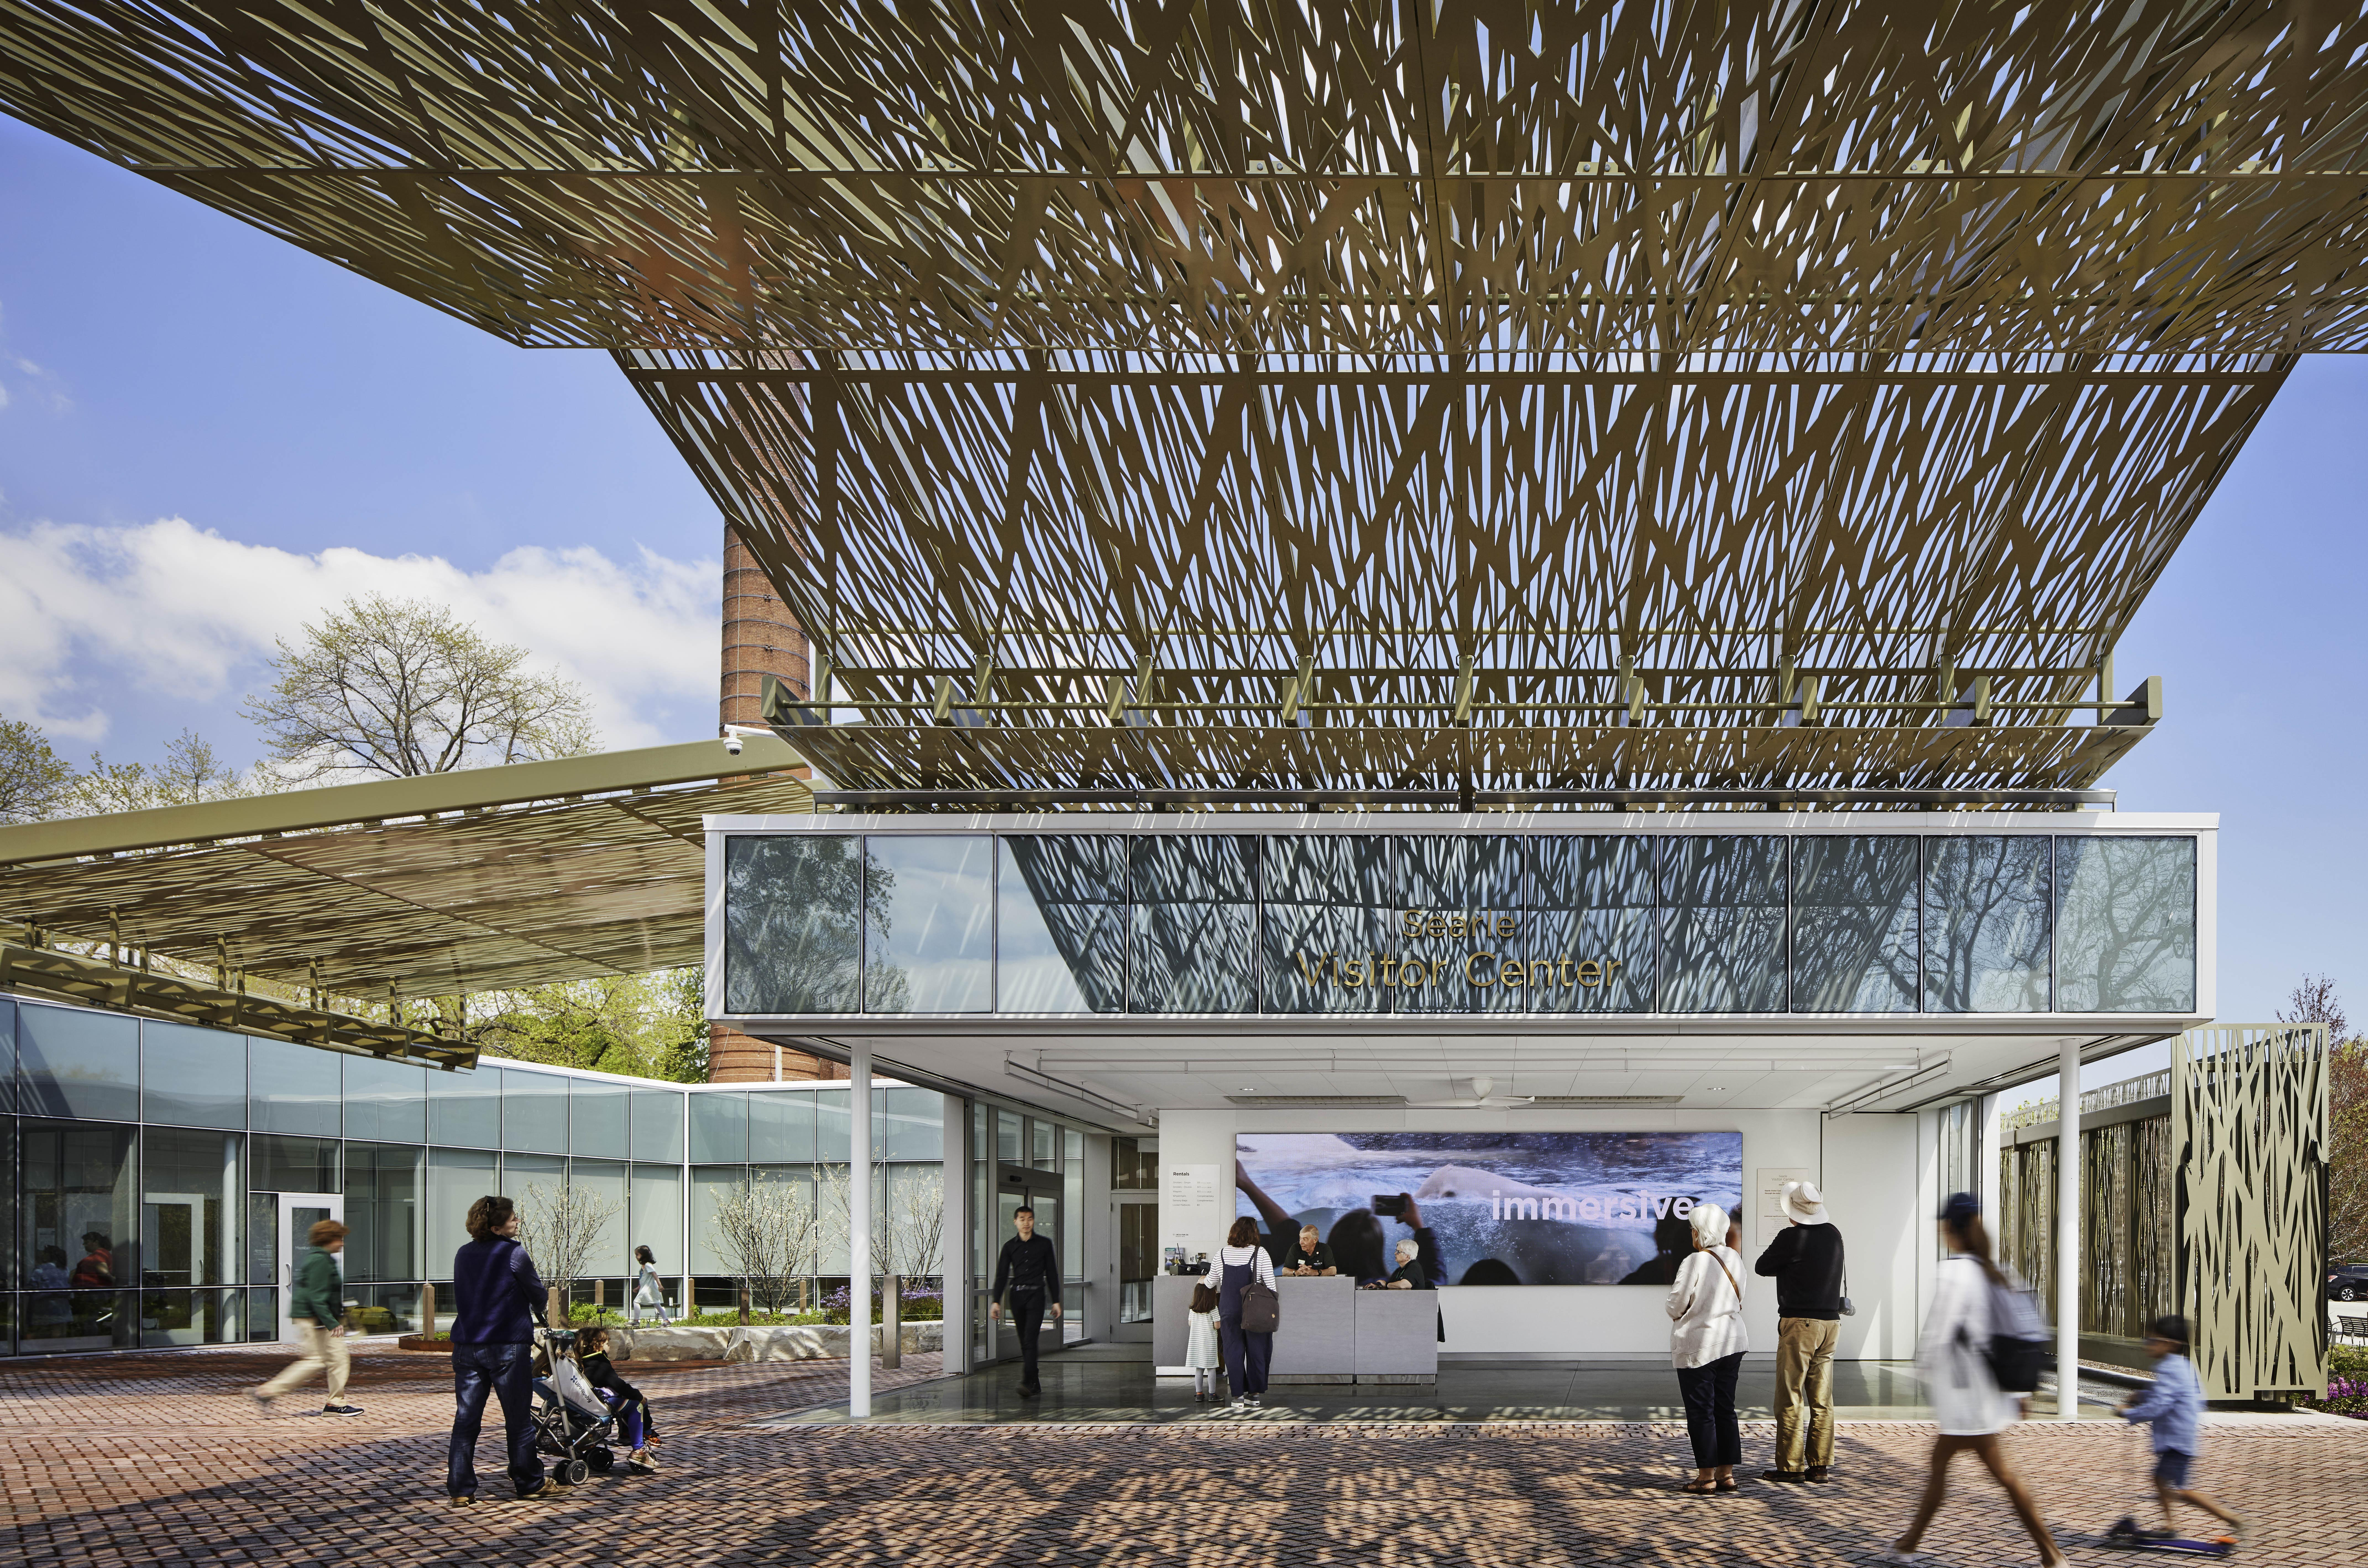 Sliding glass walls that completely disappear at Lincoln Park Zoo's Visitor Center